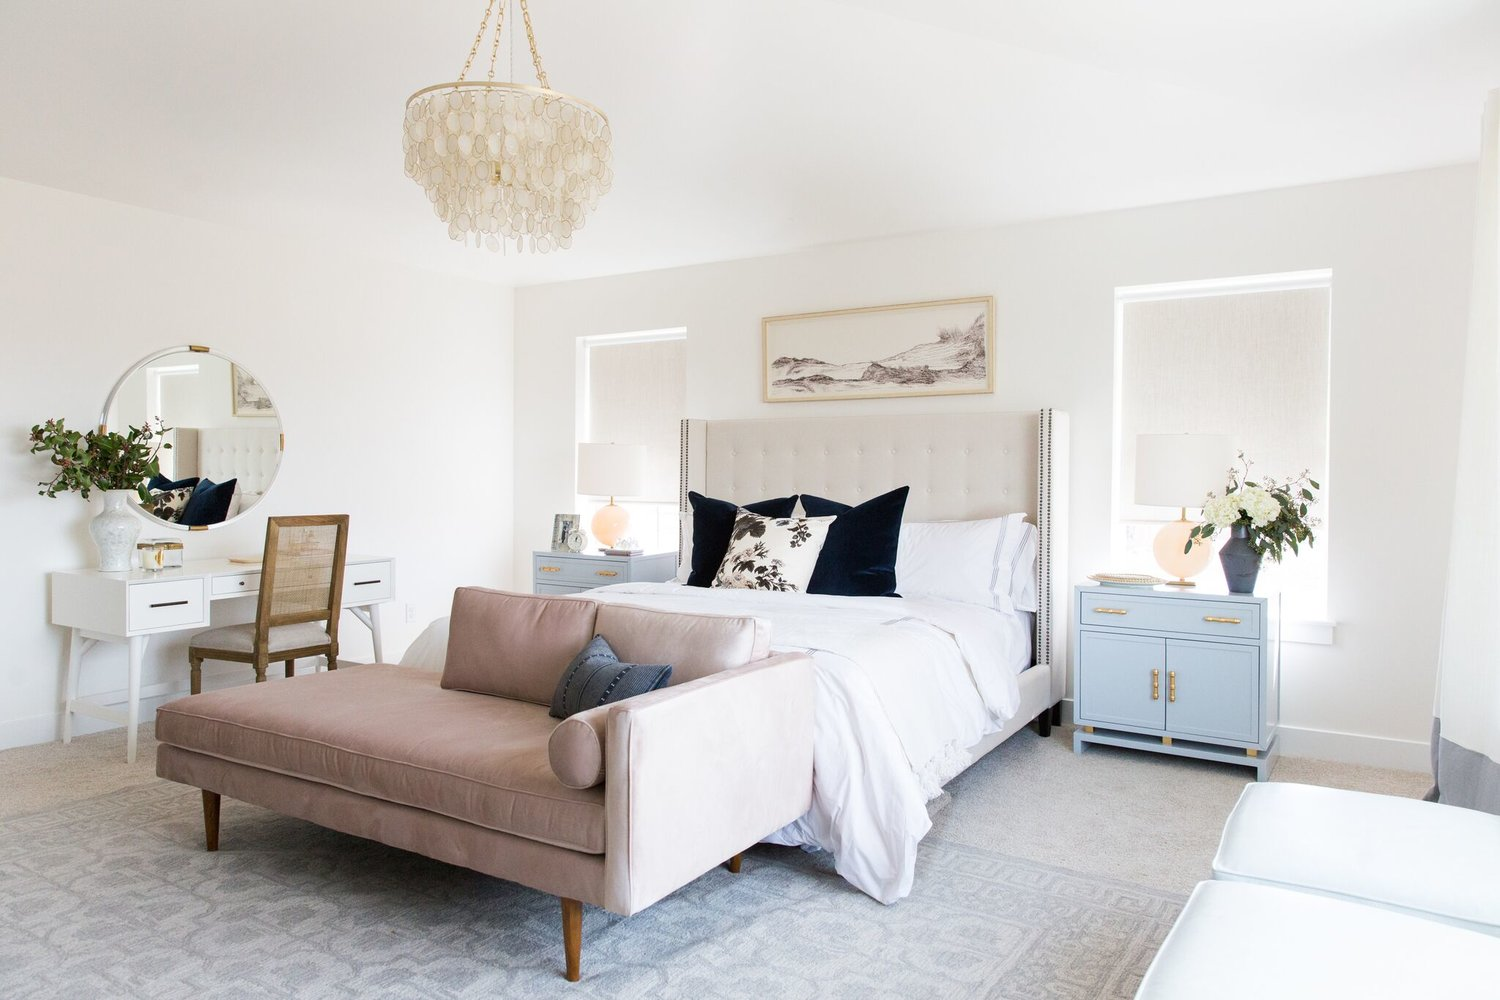 THIS PALE PINK LOUNGER IS ALL MY BEDROOM DREAMS COME TRUE. If our new master has enough room, I can't NOT have one of these.